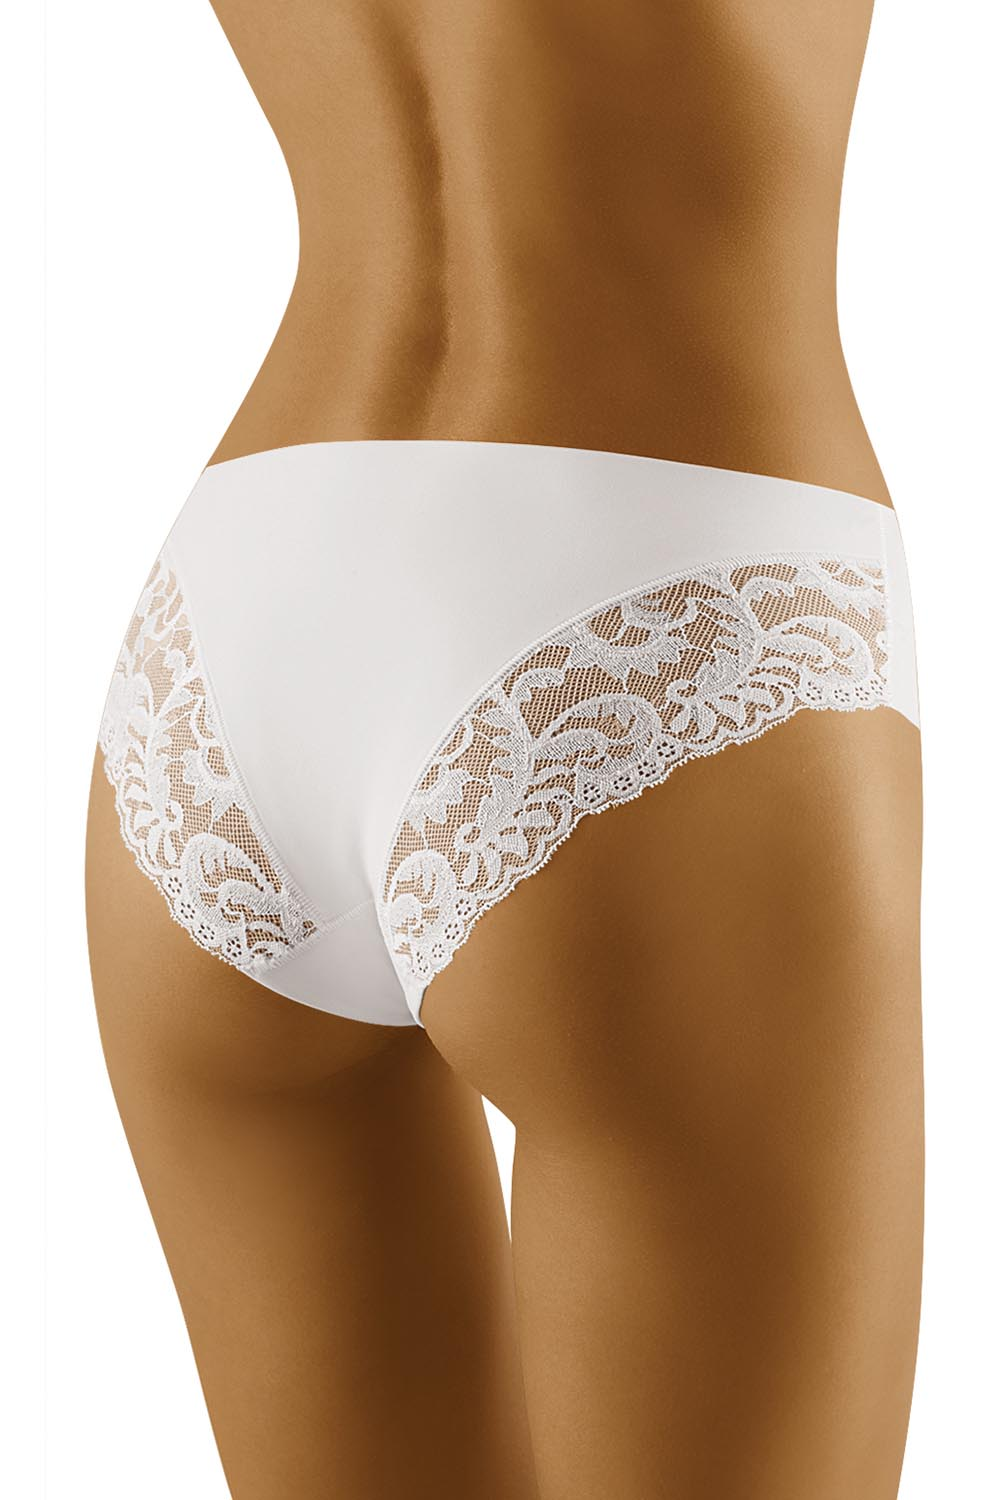 Wolbar women/'s smooth briefs WB401 New Panties Comfortable Underwear,Top Quality